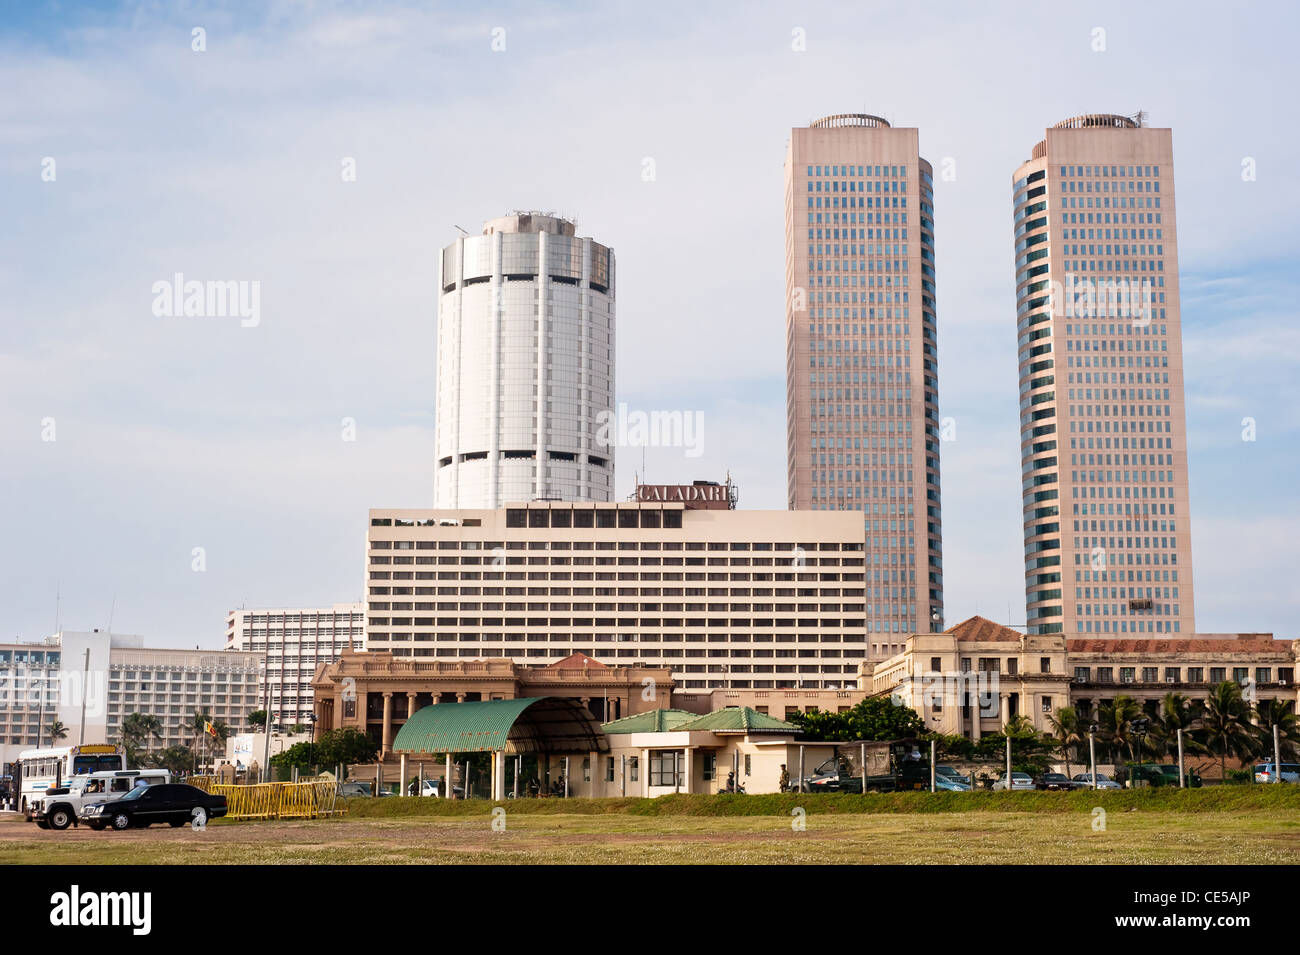 The twin towers of the World Trade Centre Colombo also known as WTC Colombo or WTCC is the tallest completed building. - Stock Image